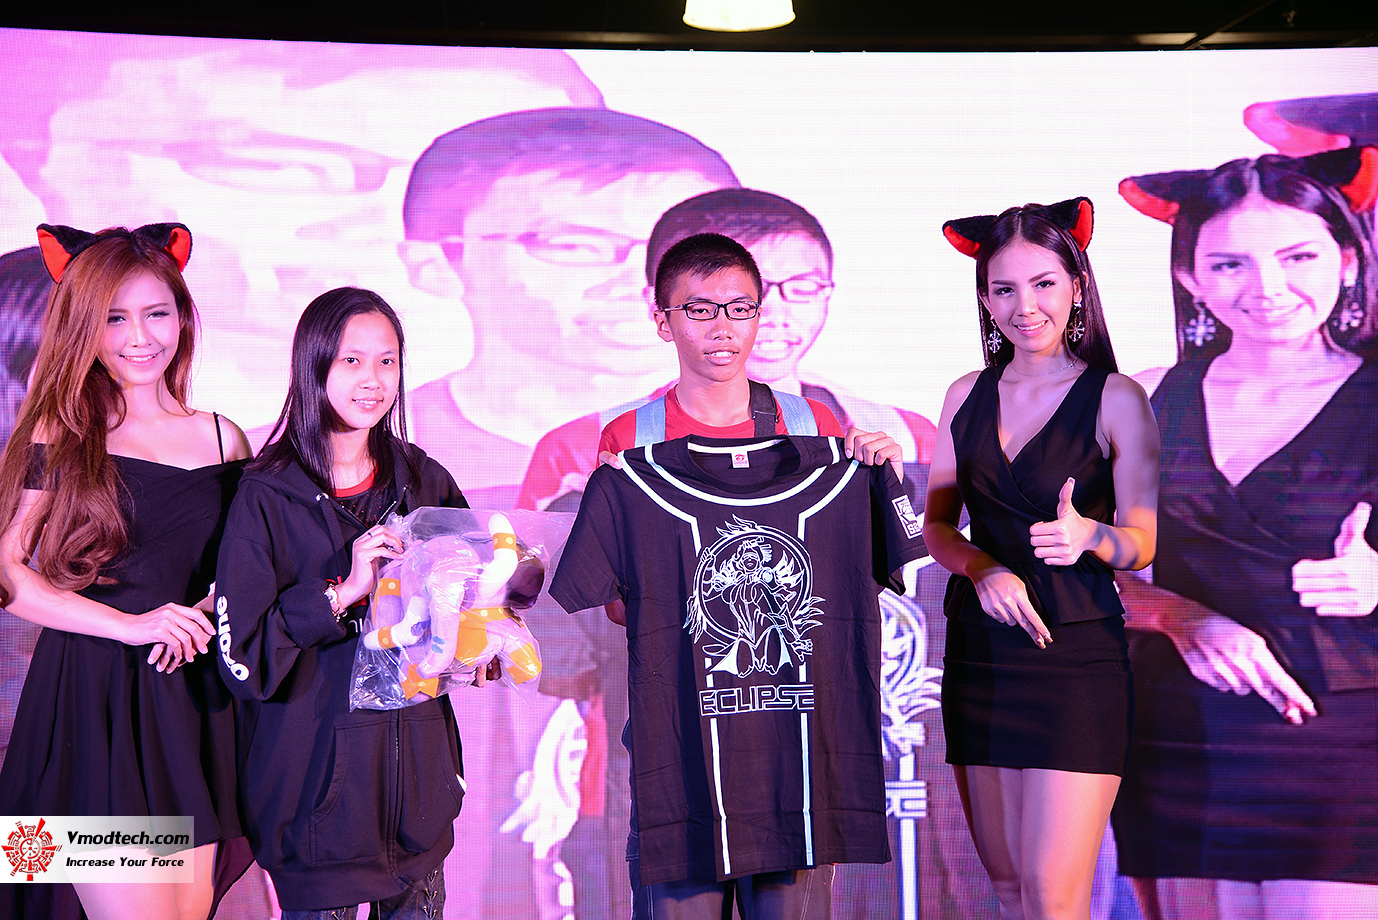 dsc 7255 AMD OMG! Party 2015 (AMD Overclock Modding Gaming Party 2015)